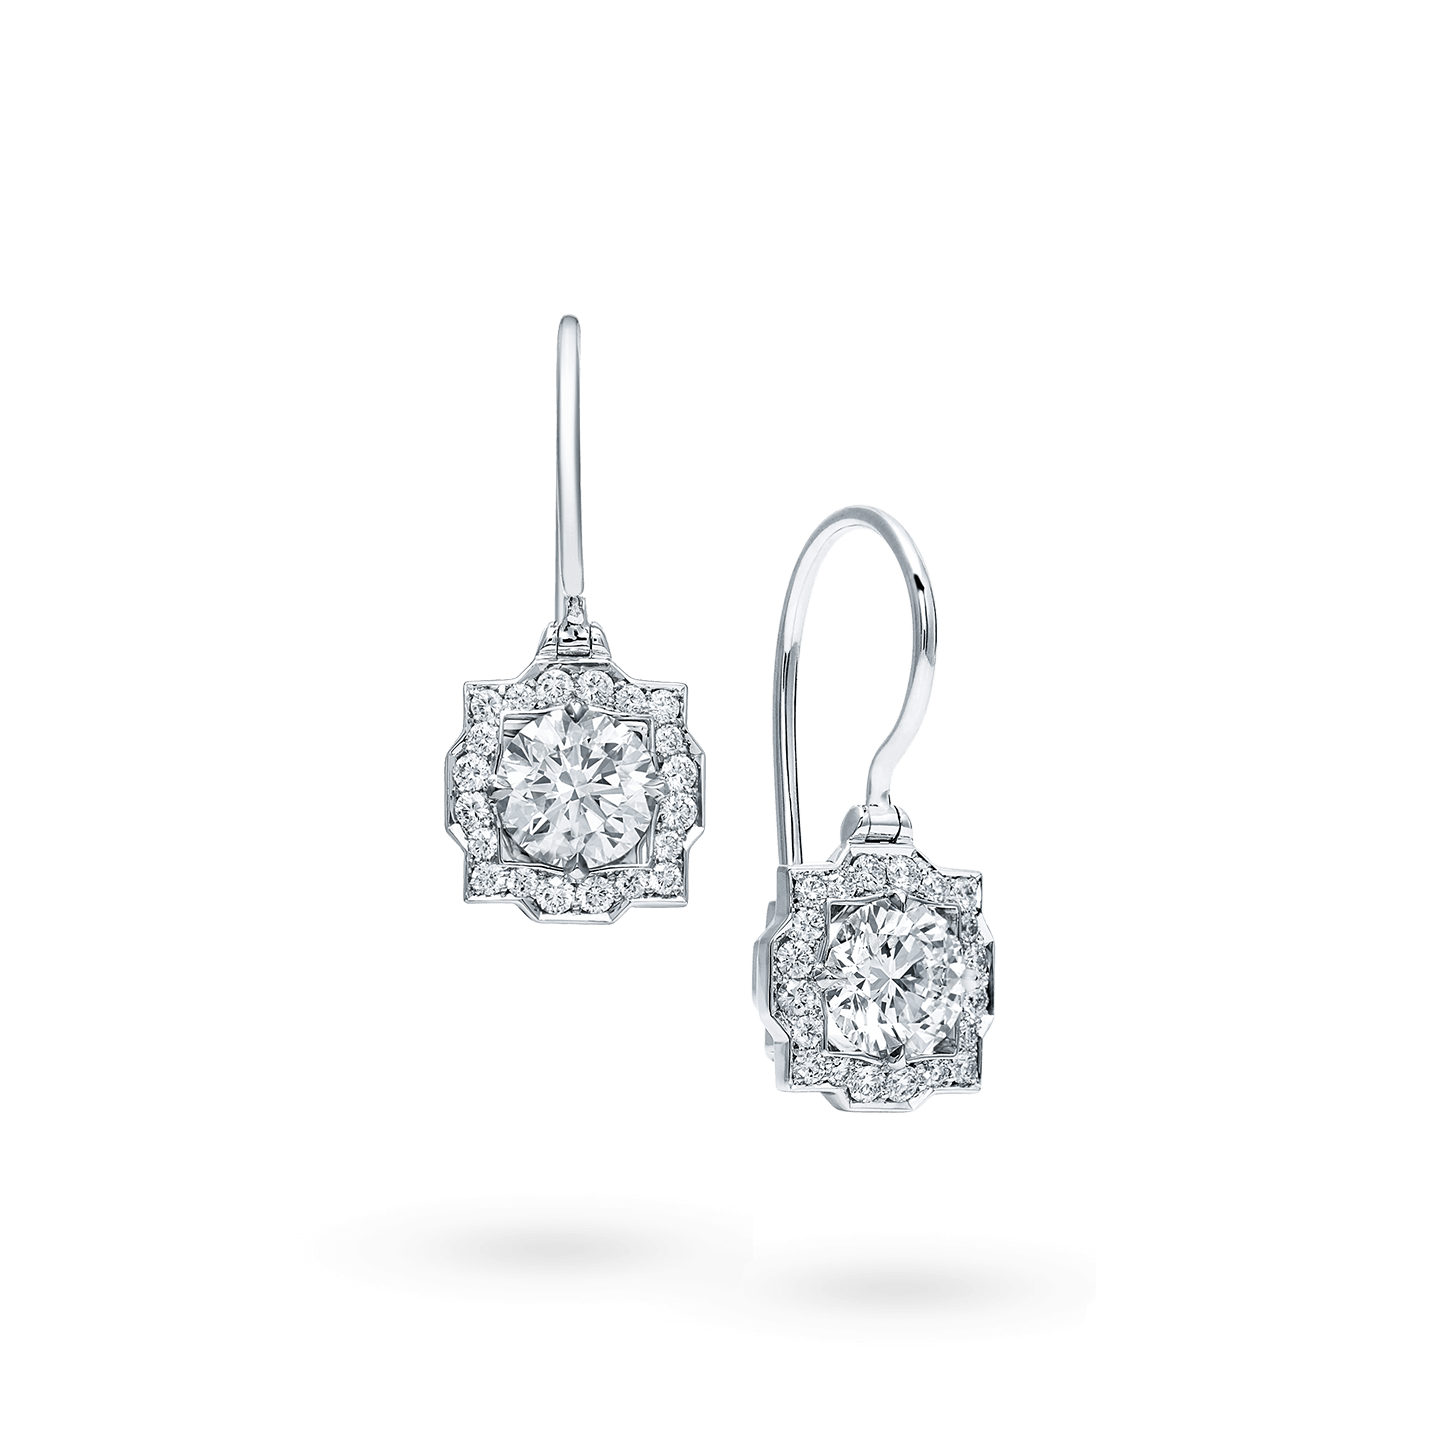 Belle Diamond Earstuds on Wires, Product Image 2